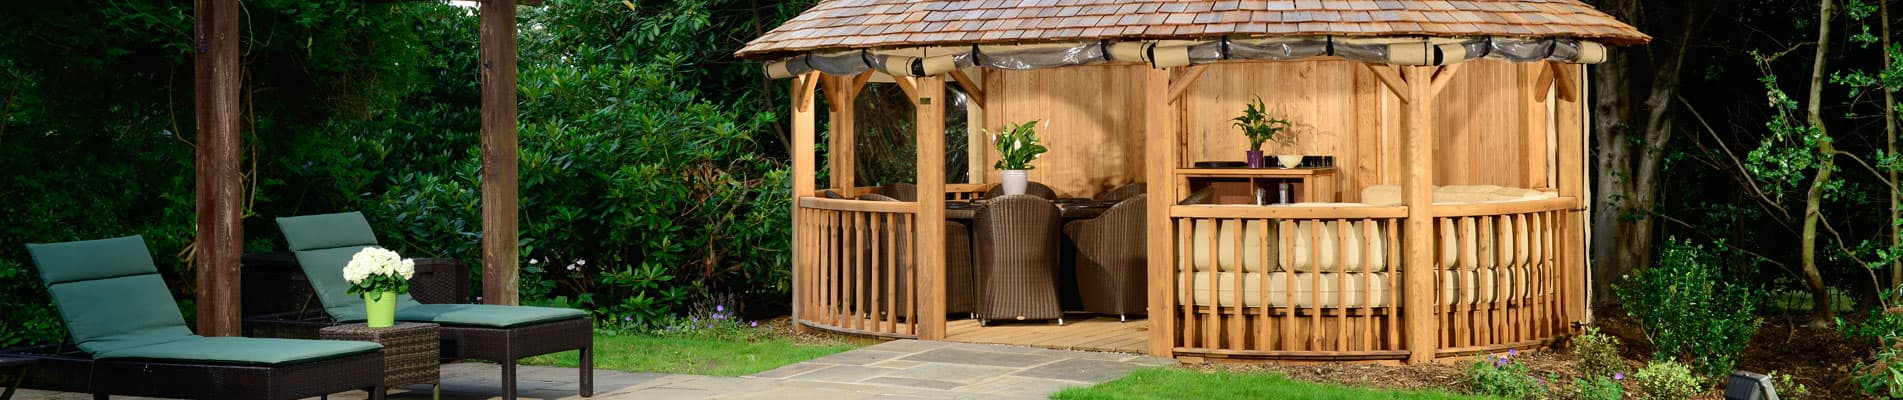 Hampton Luxury Wooden Gazebo